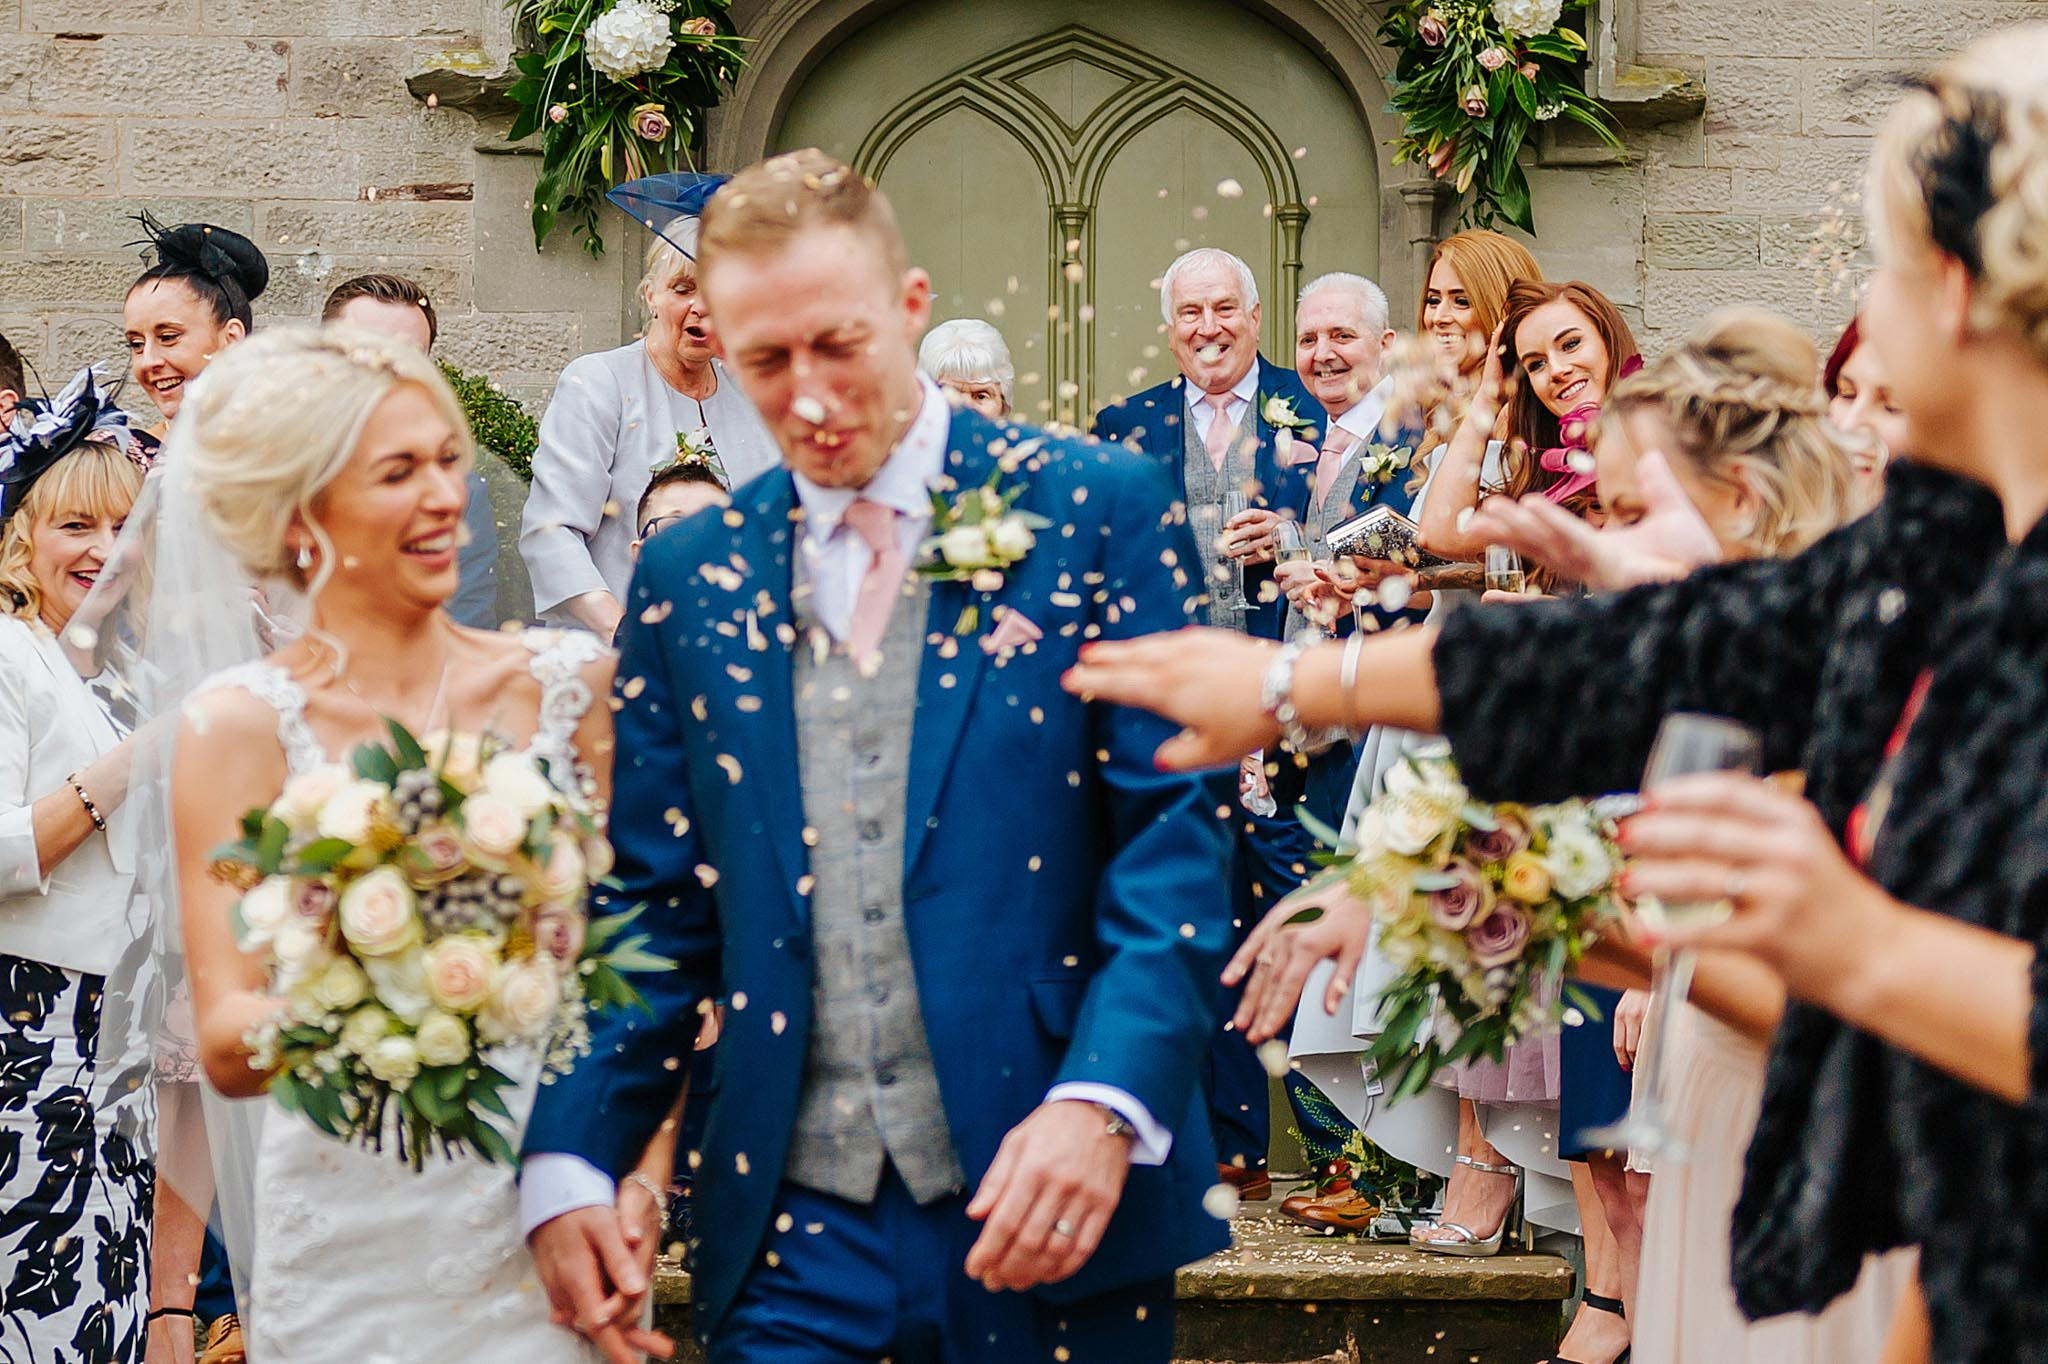 Lemore Manor wedding, Herefordshire - West Midlands | Sadie + Ken 39